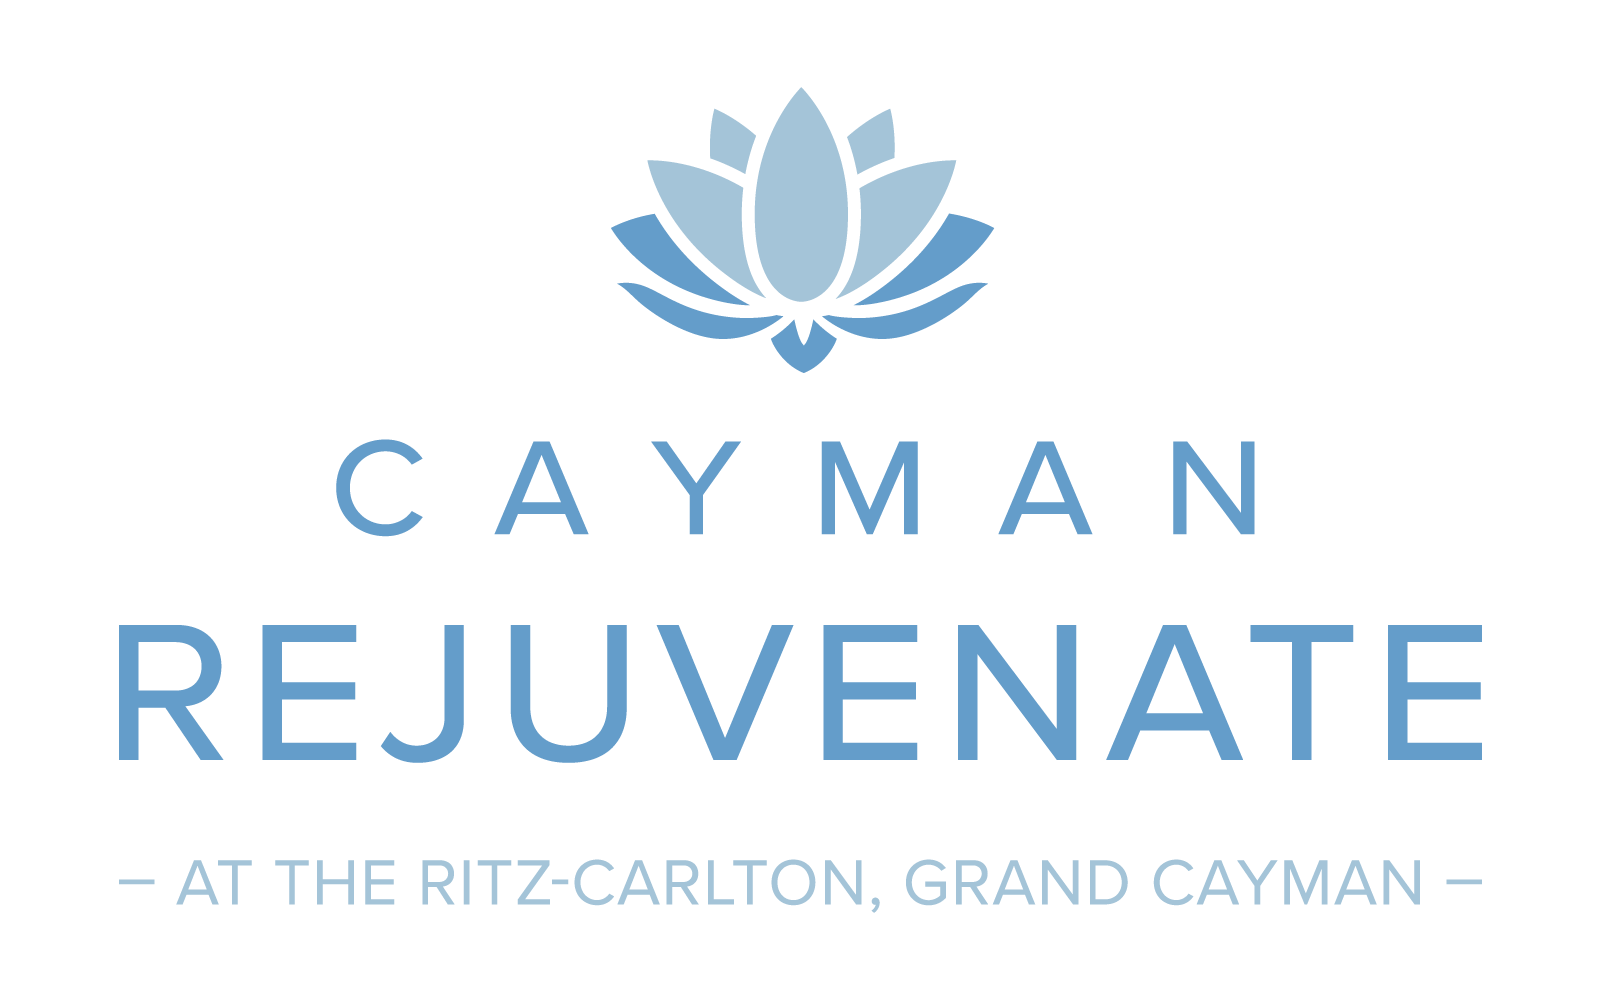 Cayman Rejuvenate | A mind and body lifestyle festival at The Ritz-Carlton Grand Cayman, Cayman Islands